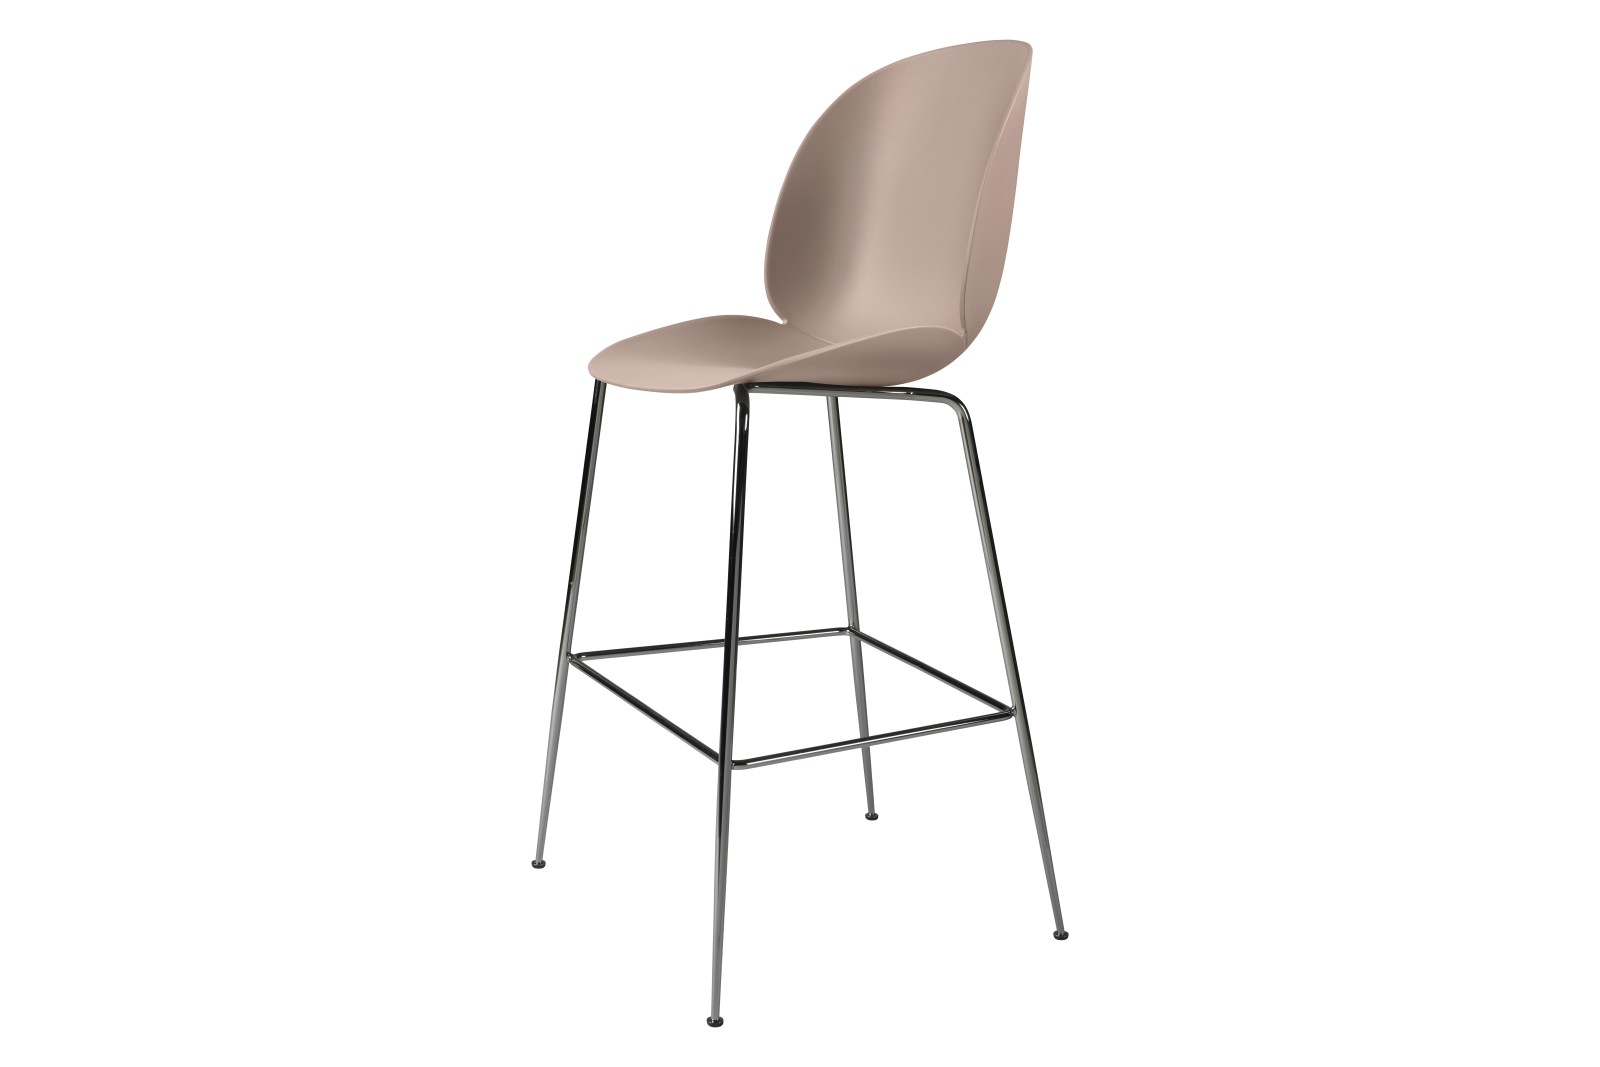 Beetle Bar Chair - Un-upholstered Conic base (Black Chrome Base, Sweet Pink, Plastic Glides)